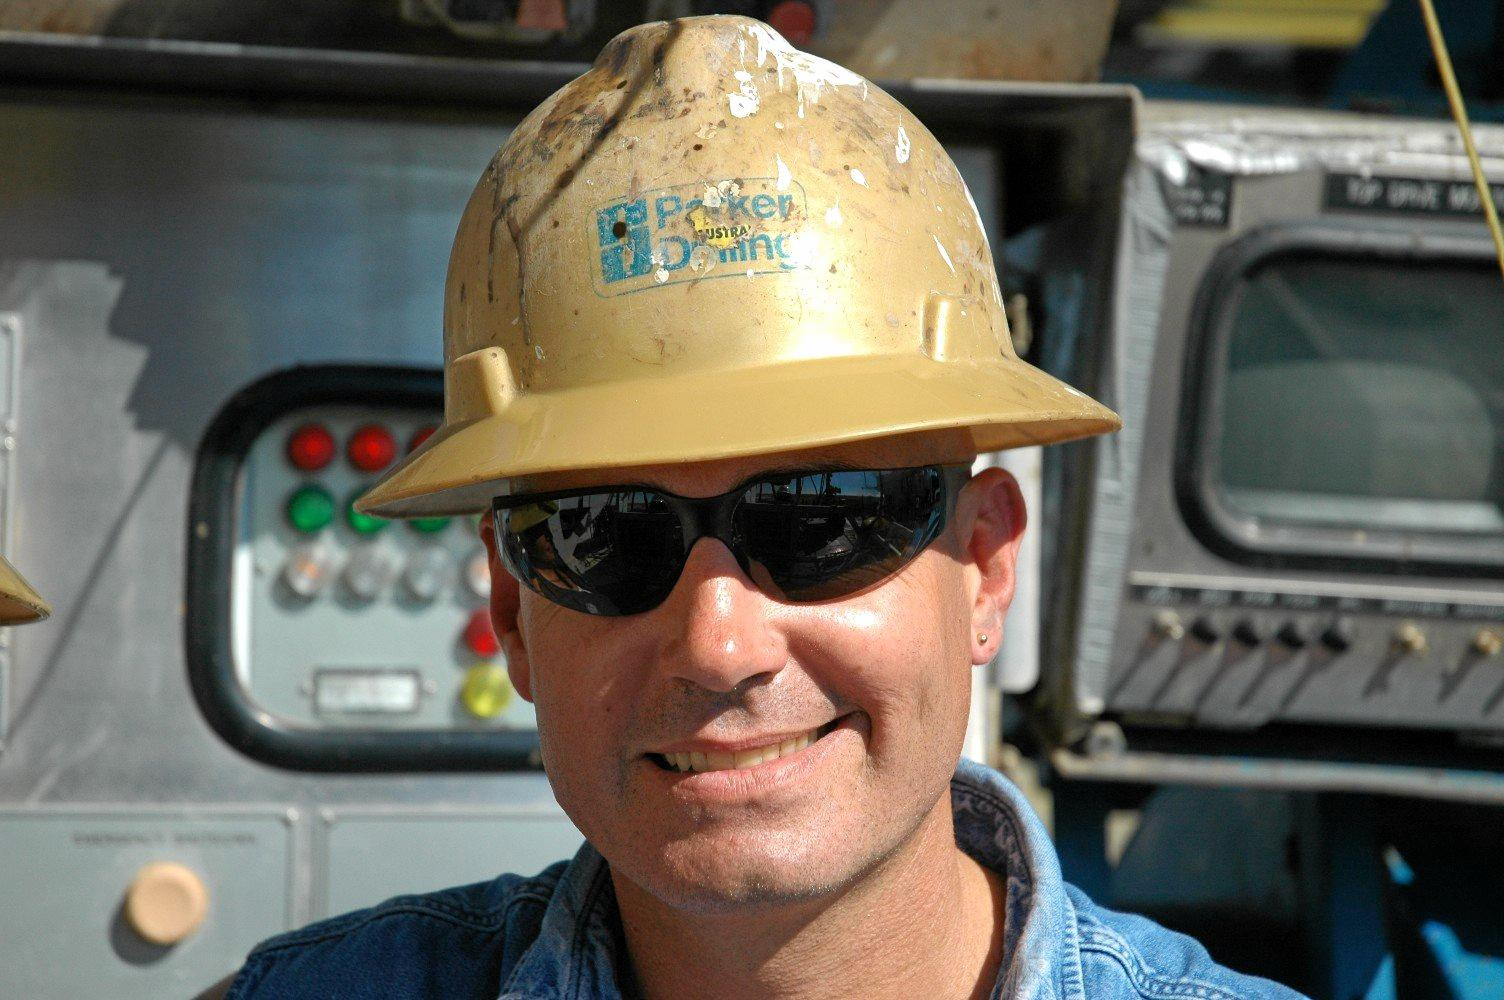 Buddina resident Pat Ahearn's career in oil drilling has taken him around the world.